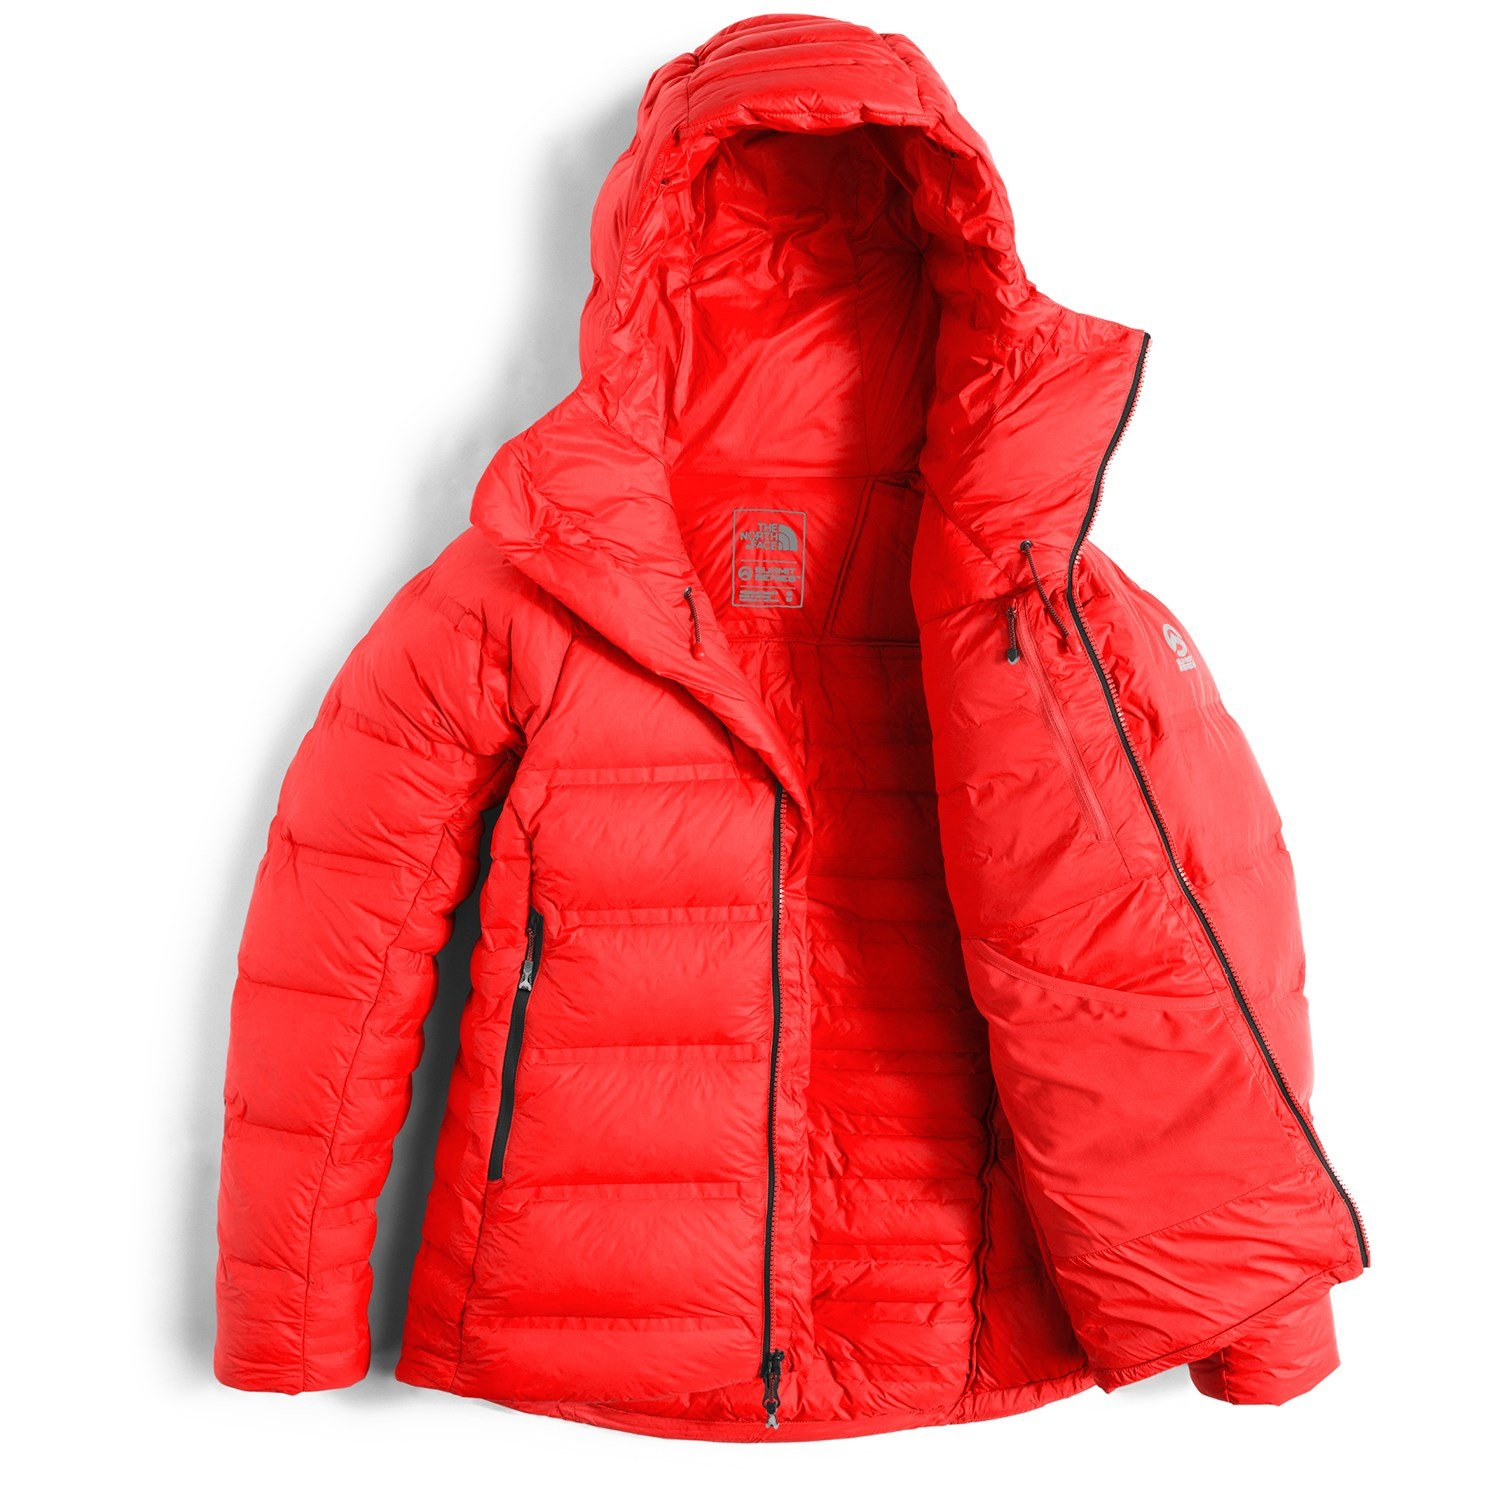 fb3bd8074a61 The North Face Summit L6 Down Belay Parka - Women s